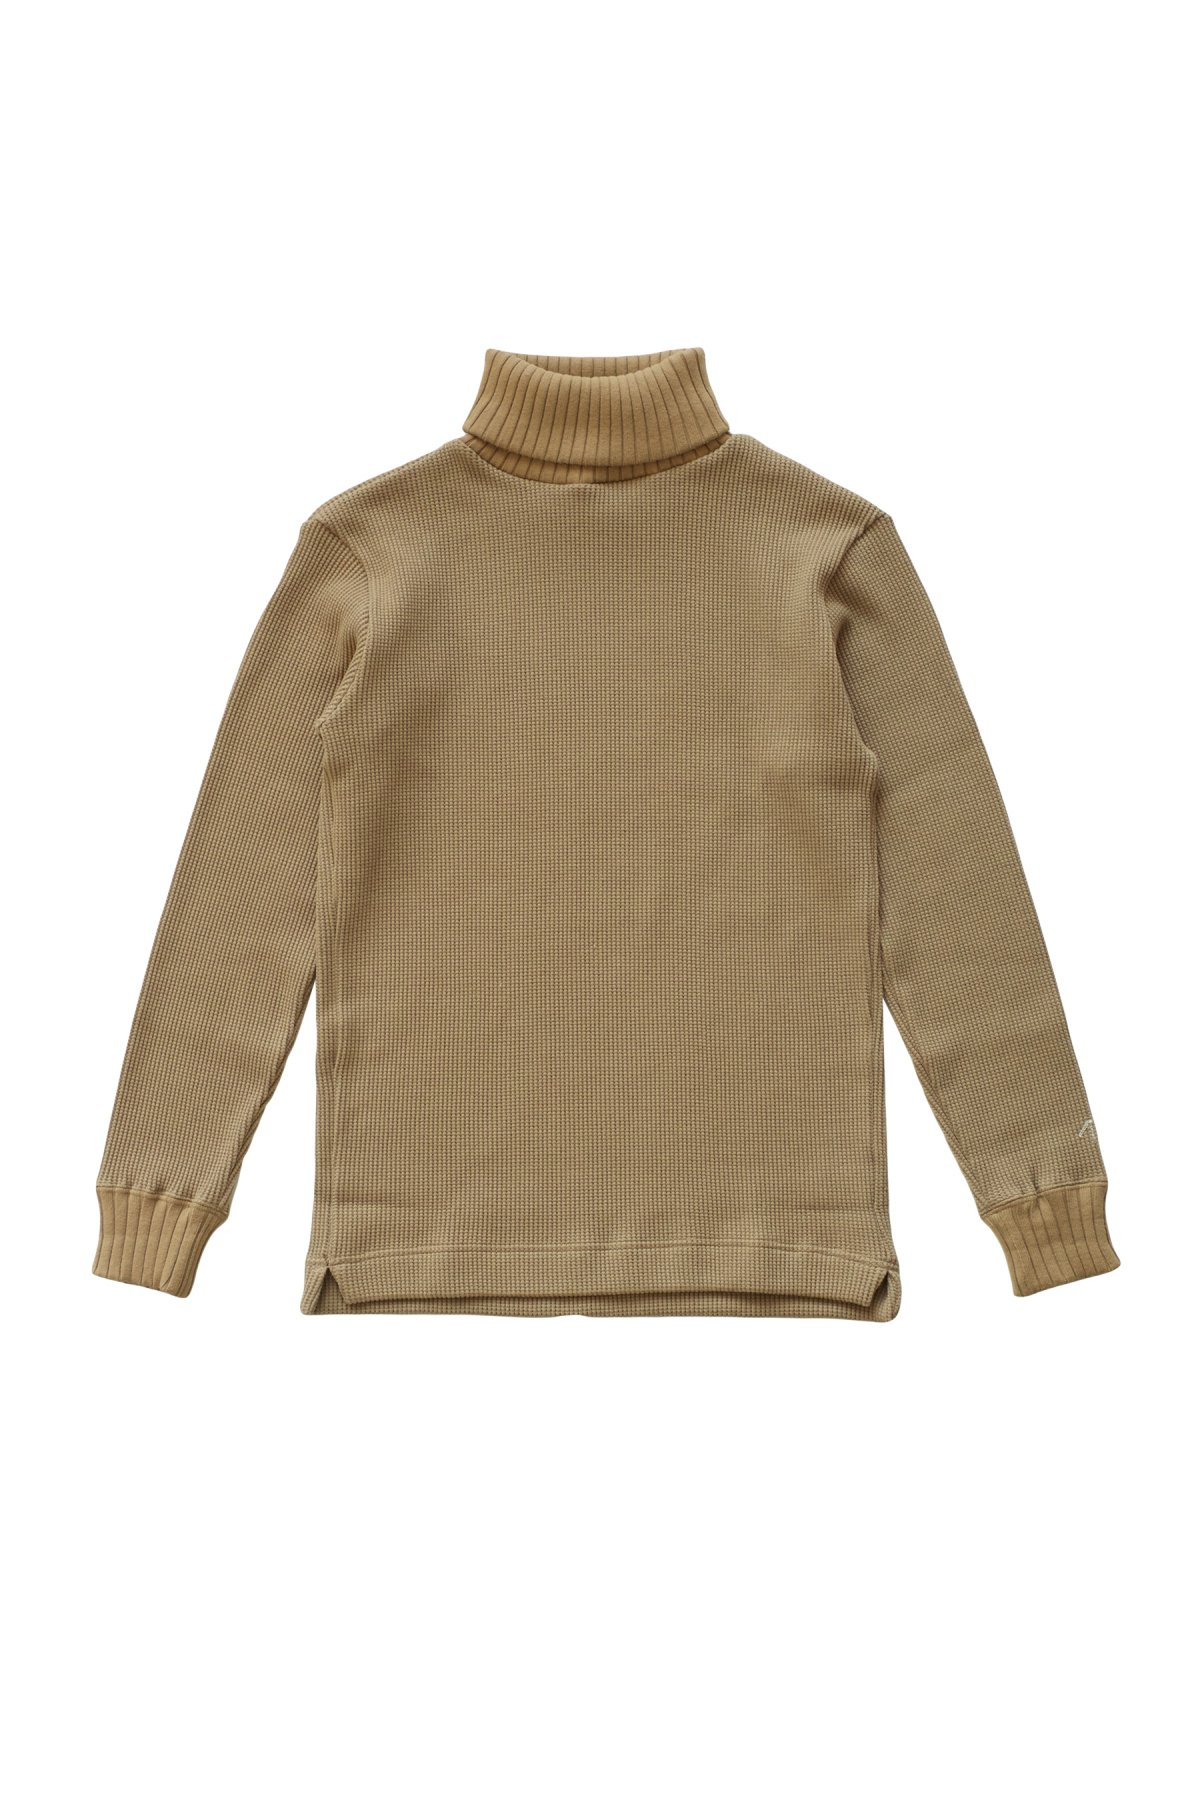 - Nigel Cabourn - TURTLE NECK WAFFLE - CAMEL - PRICE 16,500 tax-in